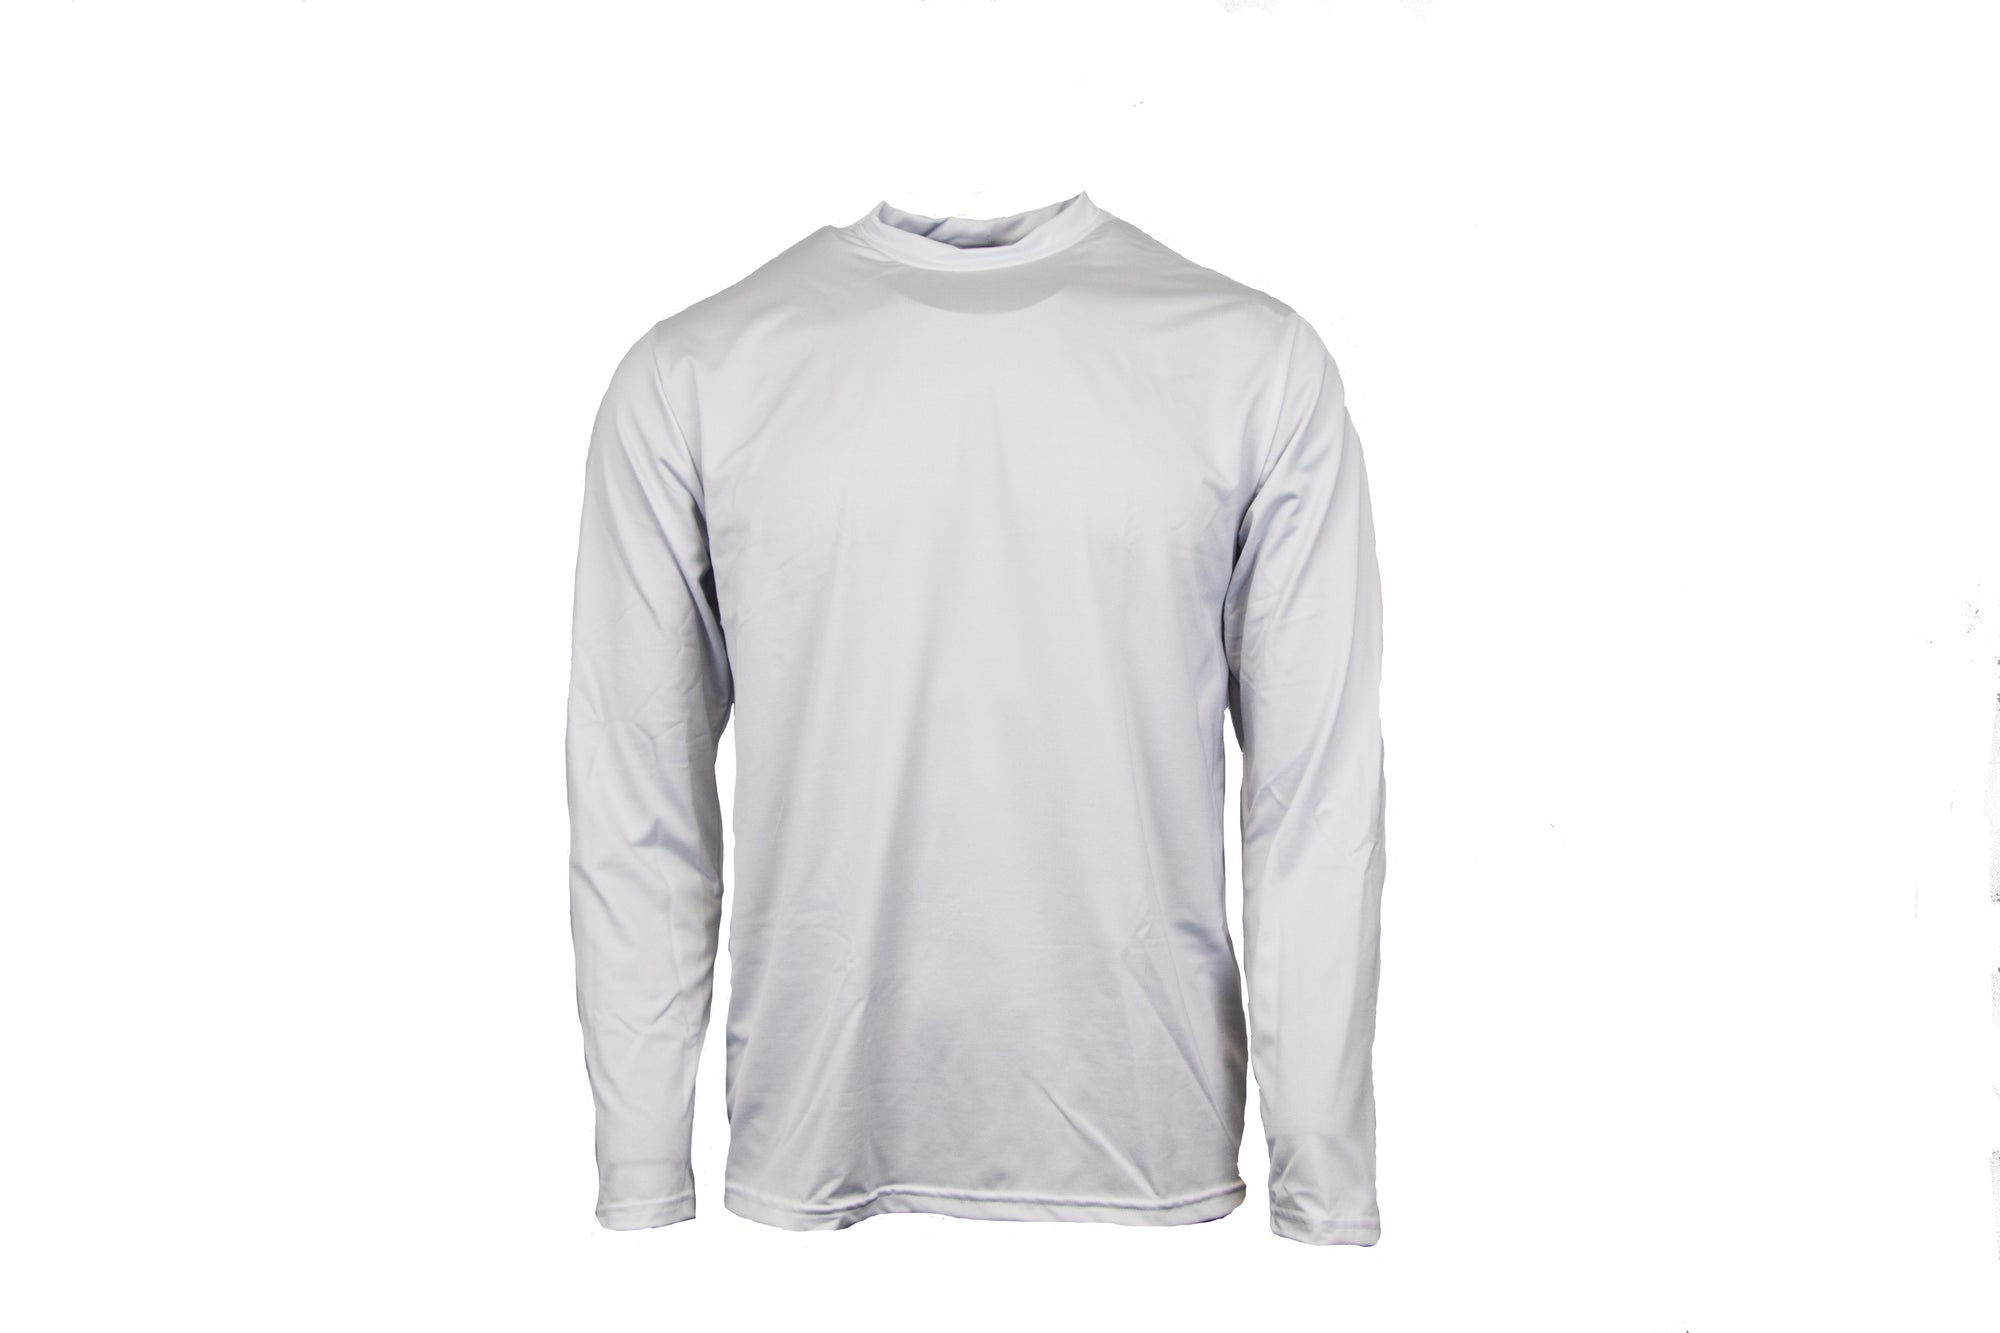 Kenyon Everywear Men's Crew Neck Long Sleeve Top